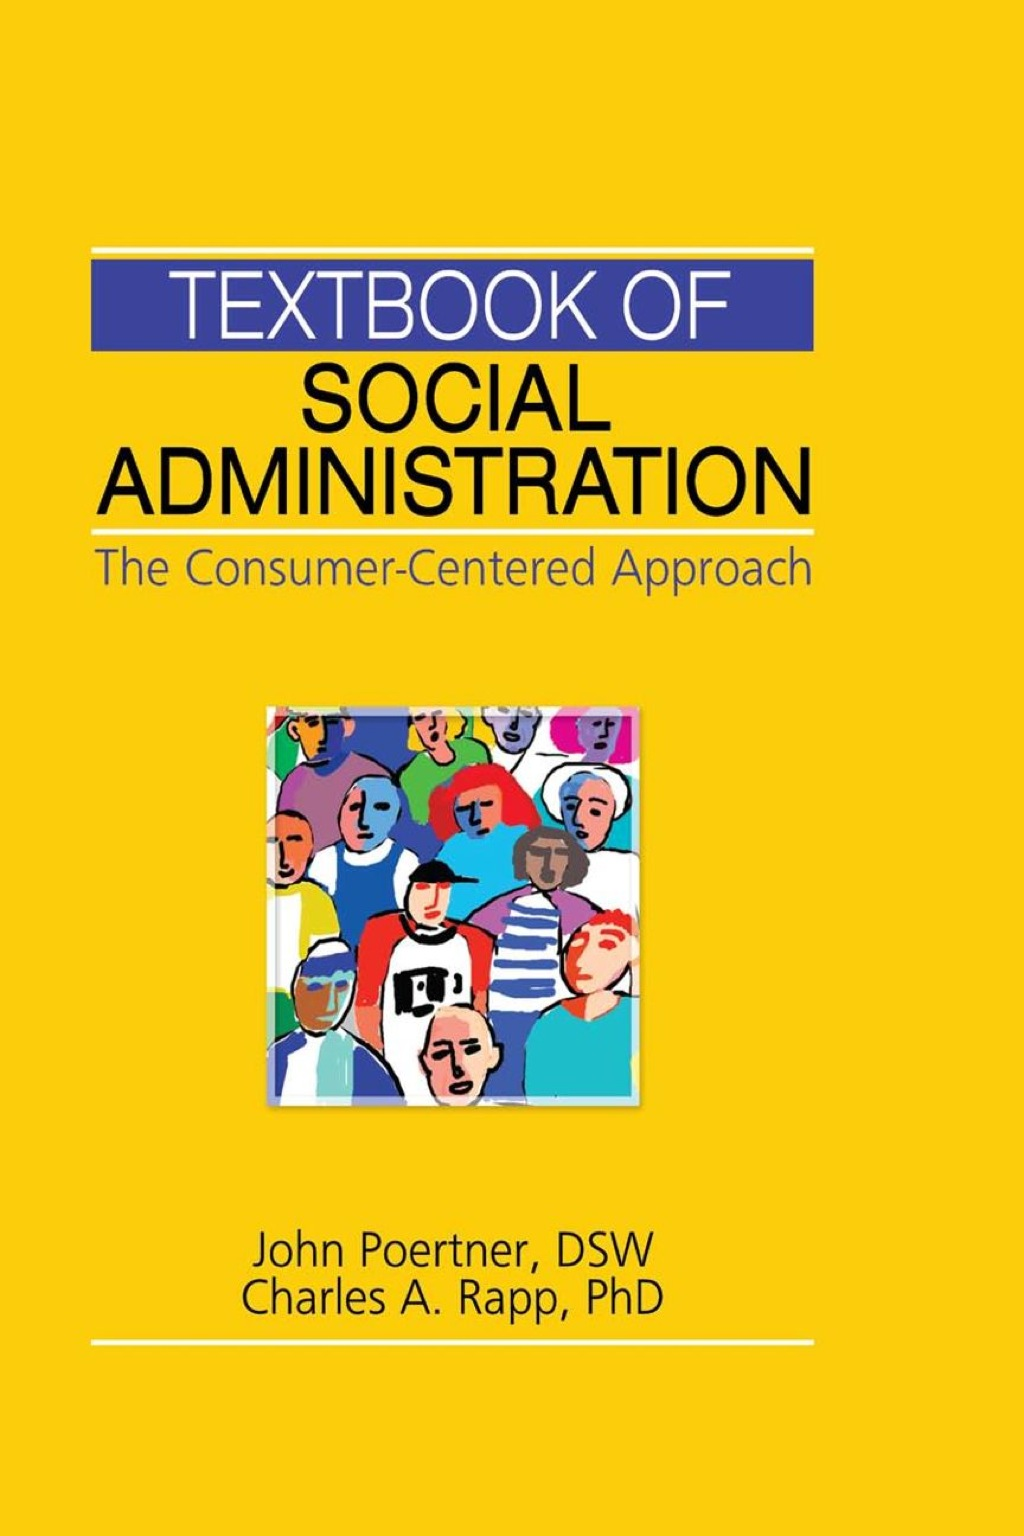 Textbook of Social Administration (eBook Rental)